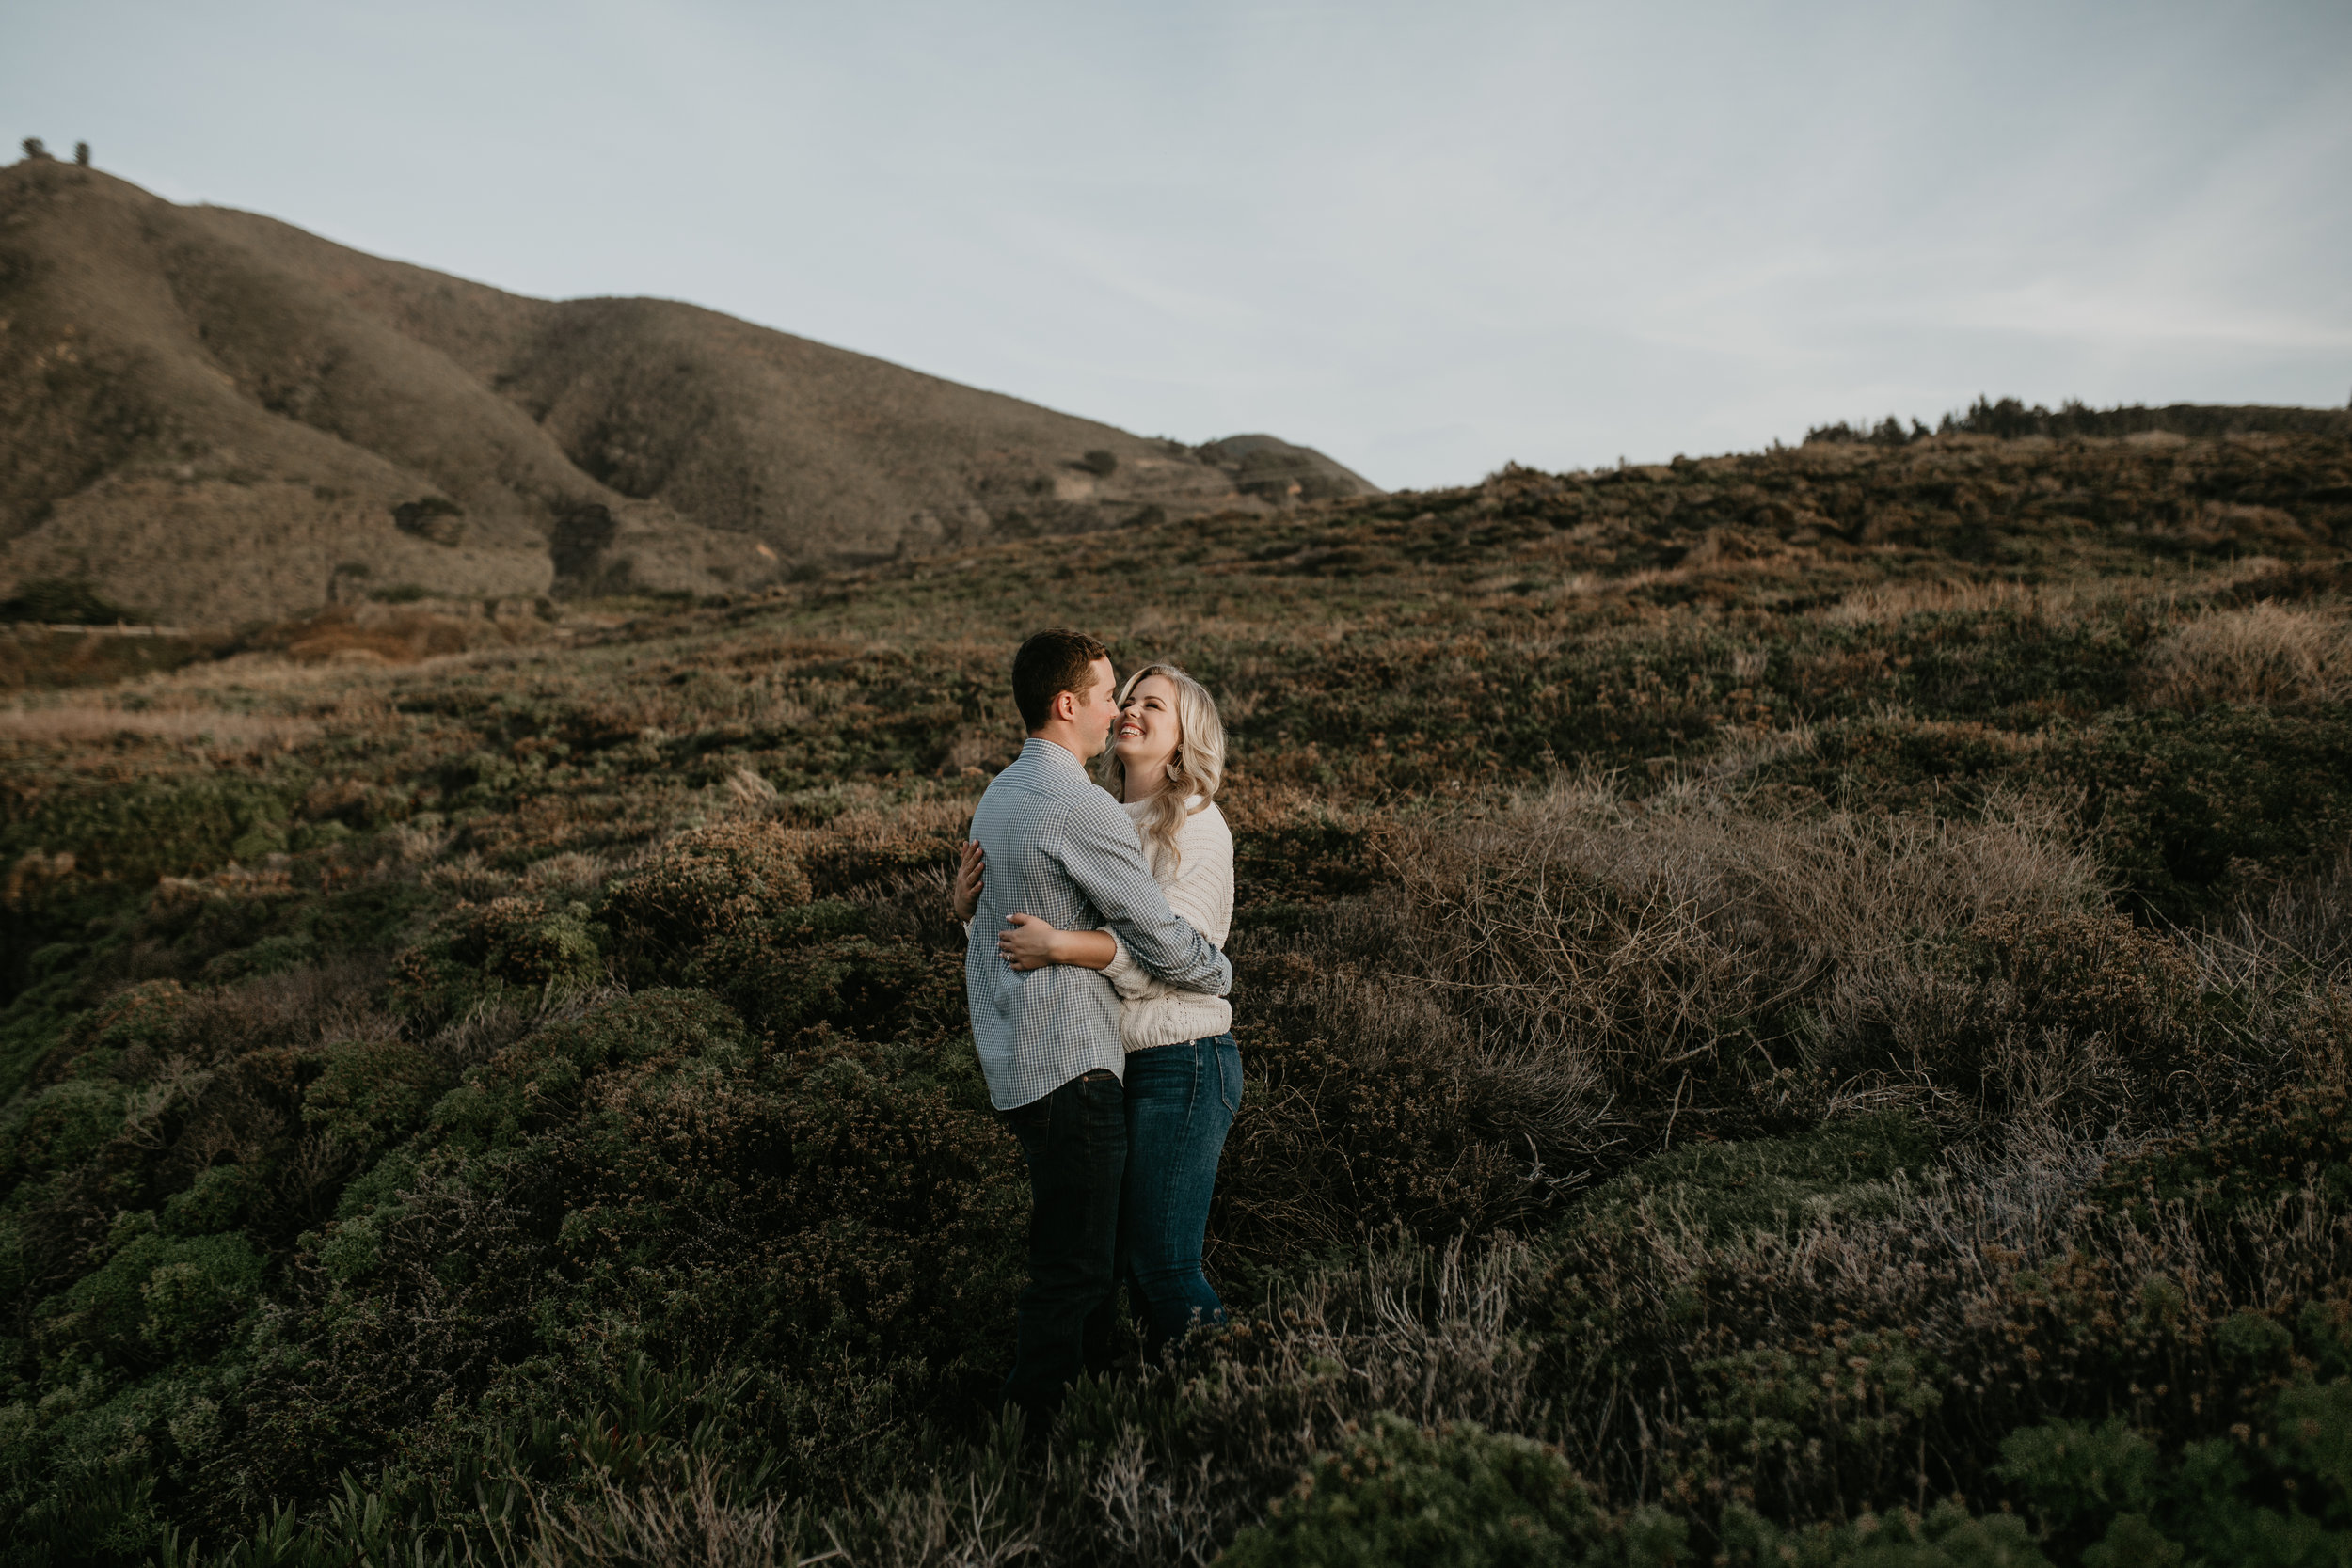 Nicole-Daacke-Photography-big-sur-garrapatta-state-park-adventurous-engagement-session-bixy-bridge-elopement-big-sur-wedding-photographer-monterey-elopement-photographer-california-golden-sunset-coast-photos-28.jpg